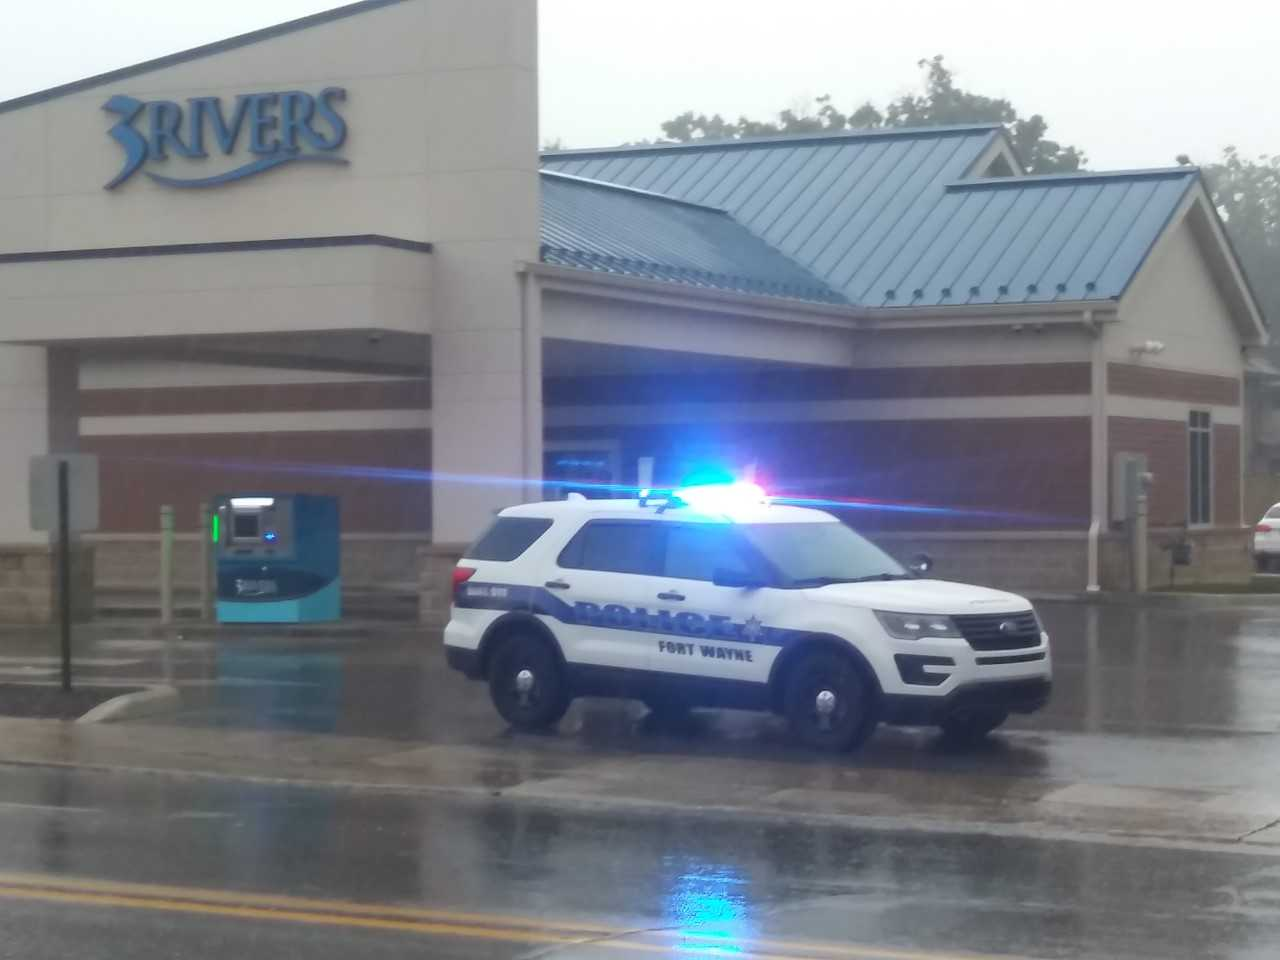 3rivers bank robbery_1537916245316.jpg.jpg